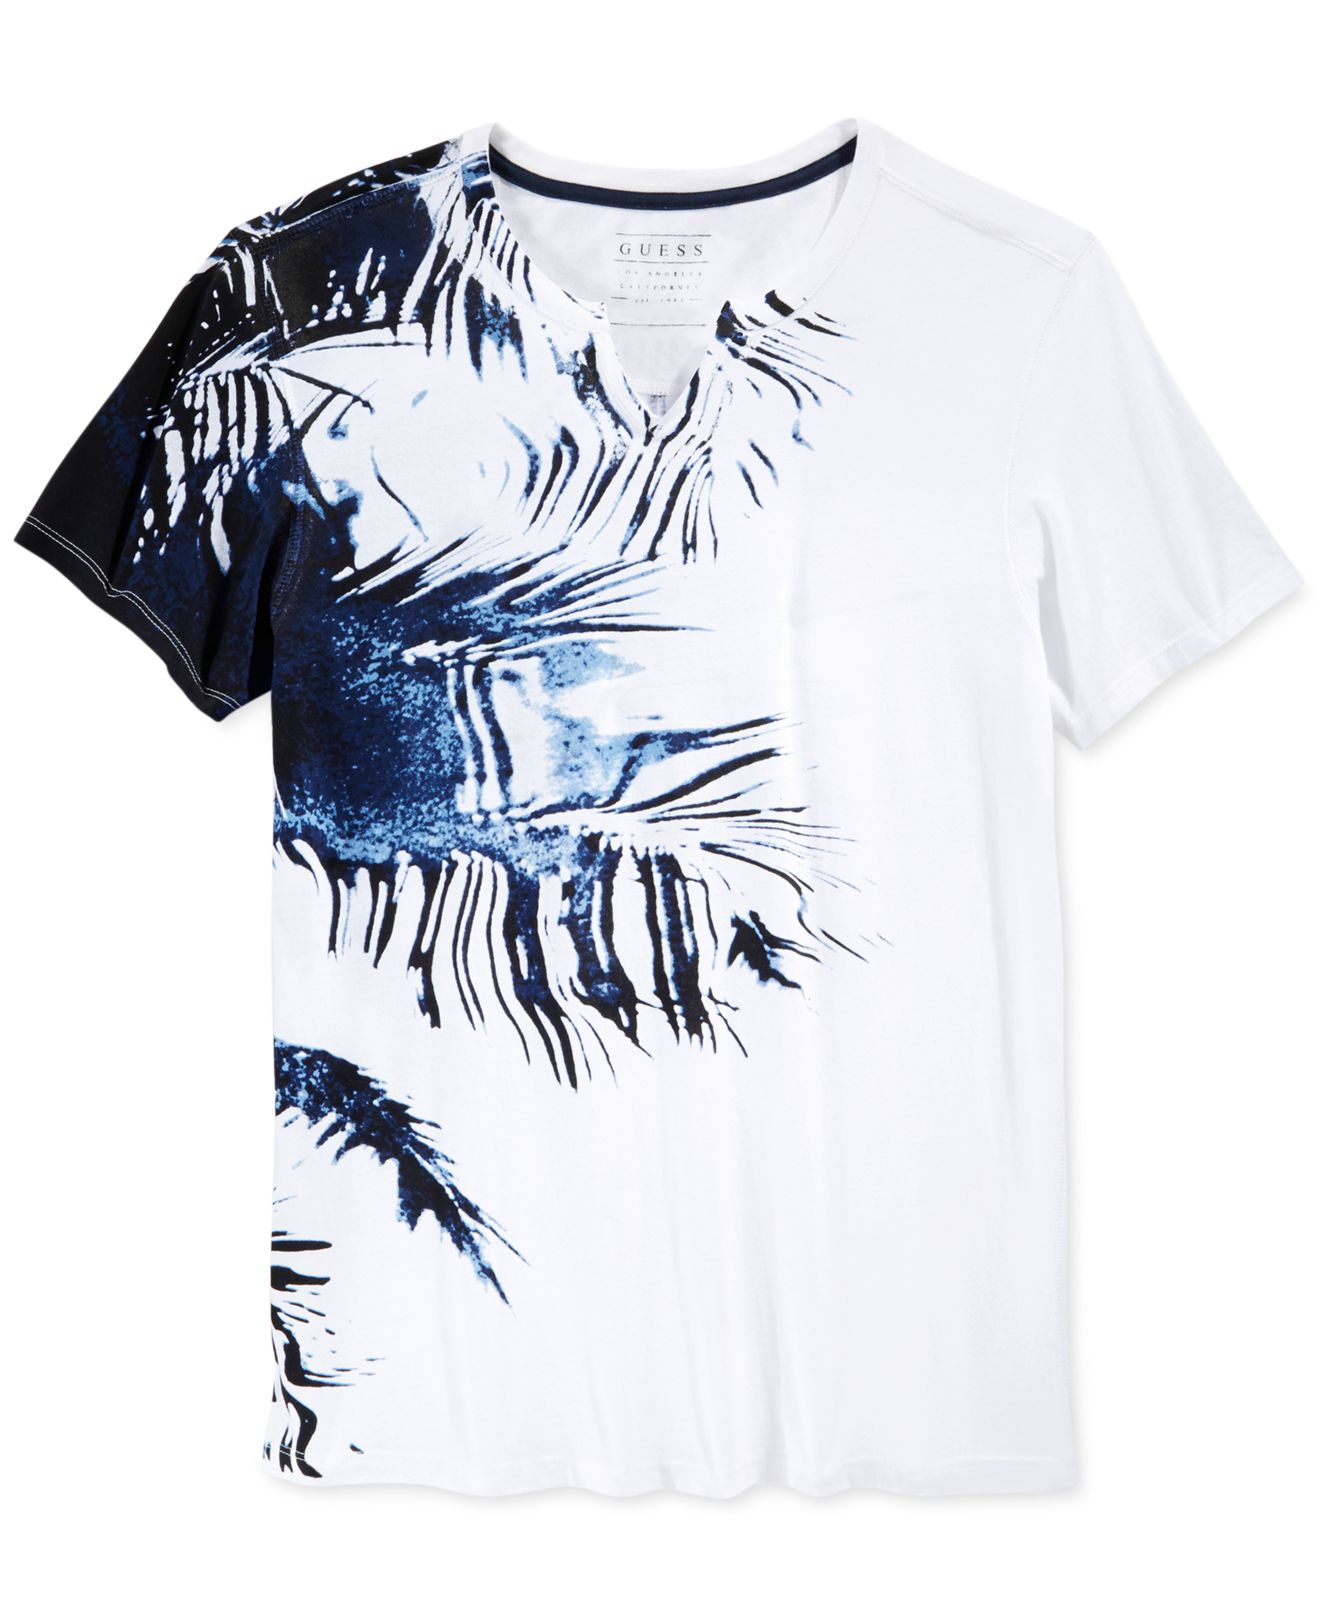 4b3bd7e22cfa Guess Stream Palm T-shirt in White for Men - Lyst